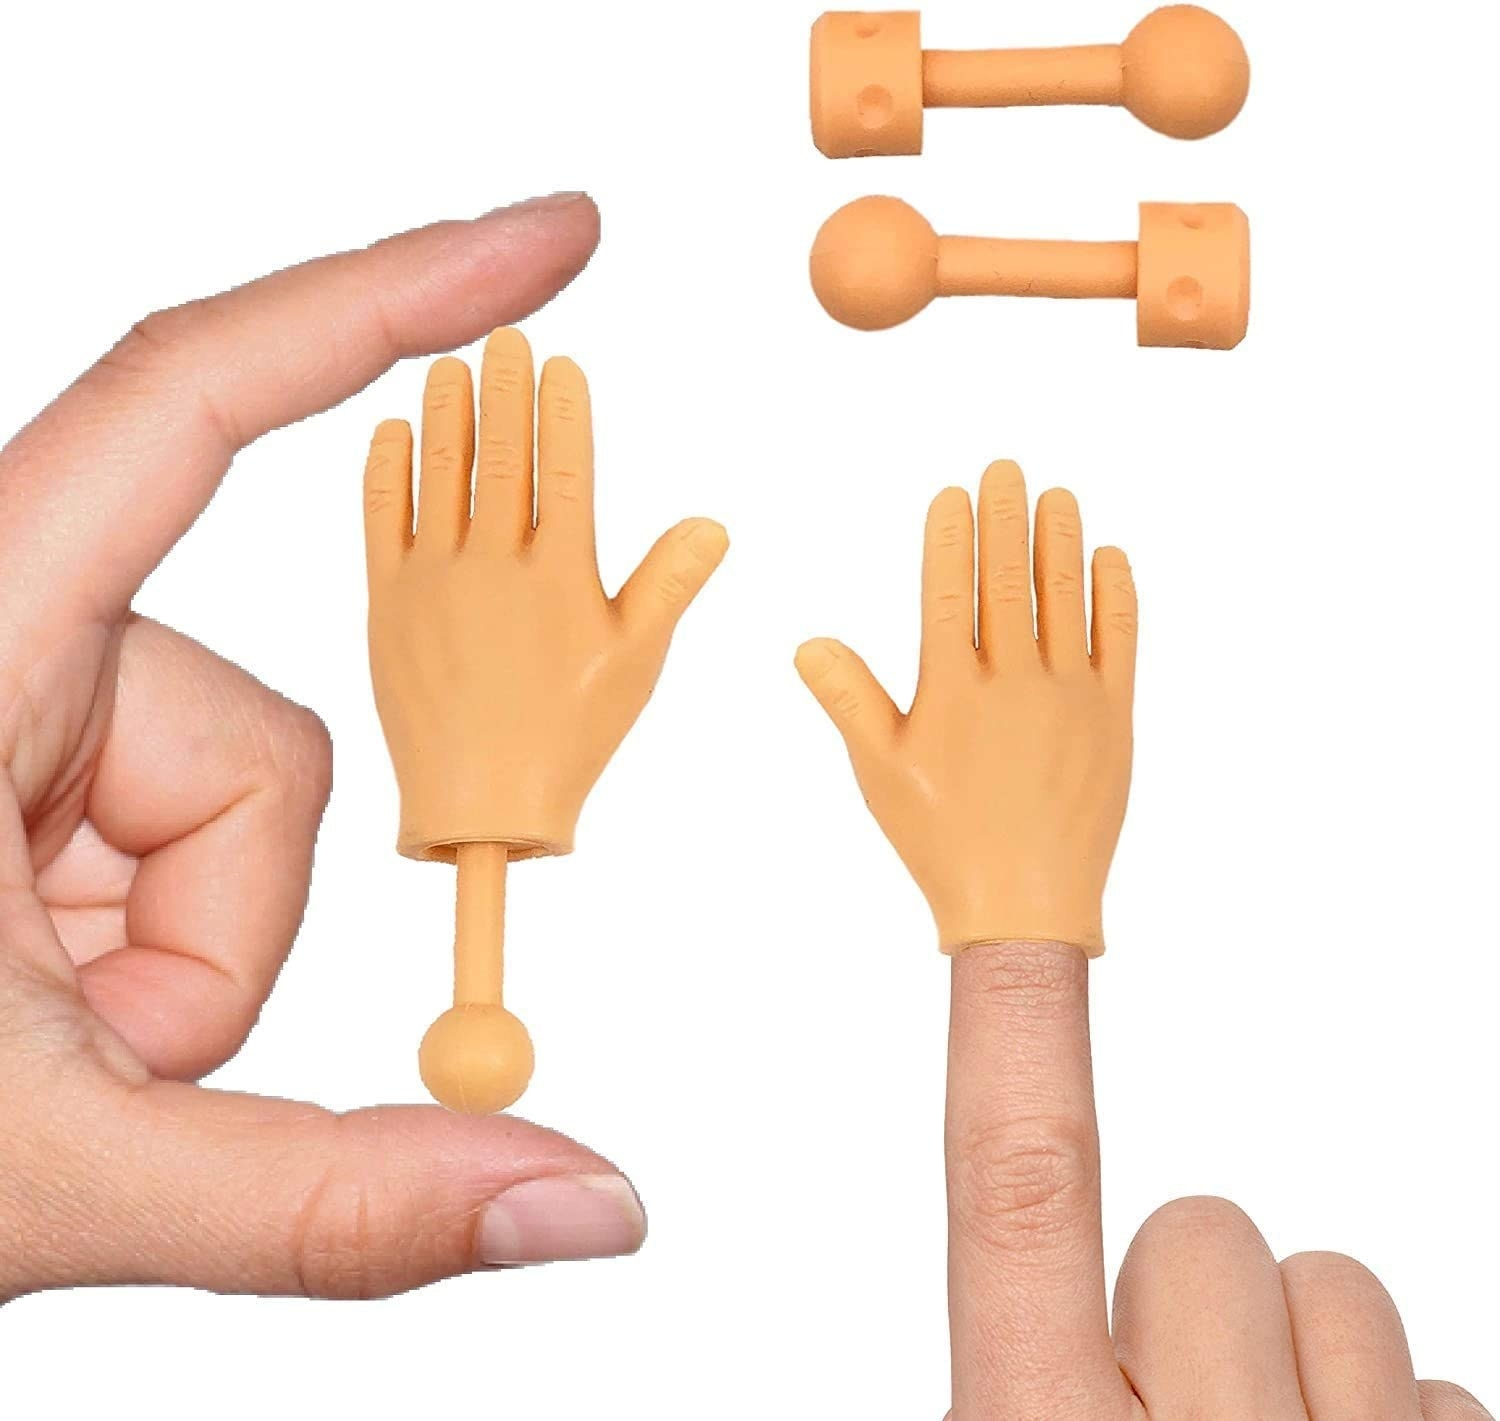 small fake hands you can put on your fingertips